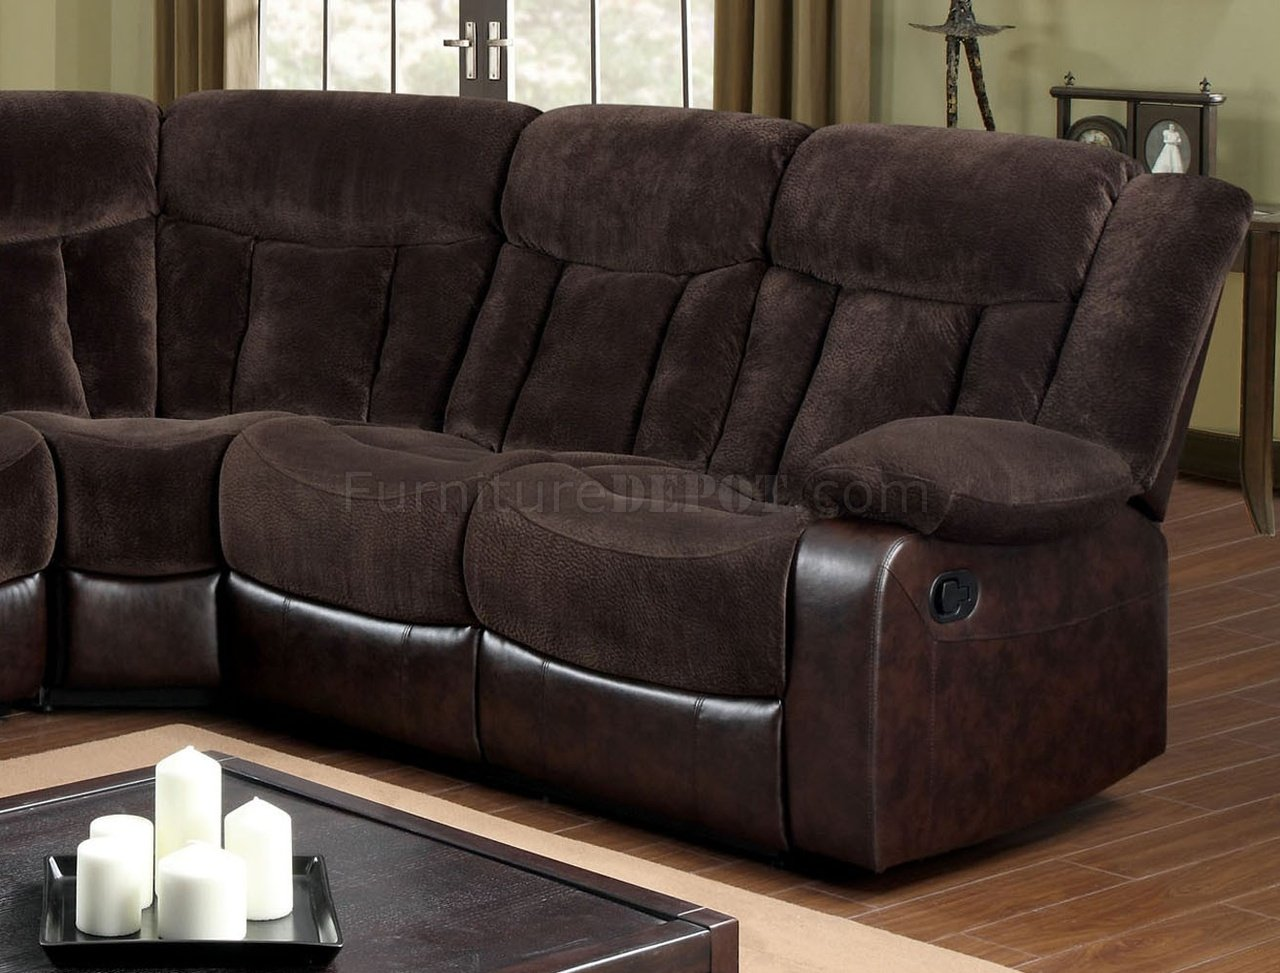 fabric sectional sofa with recliner pillows for dark leather hampshire reclining cm6809 in brown